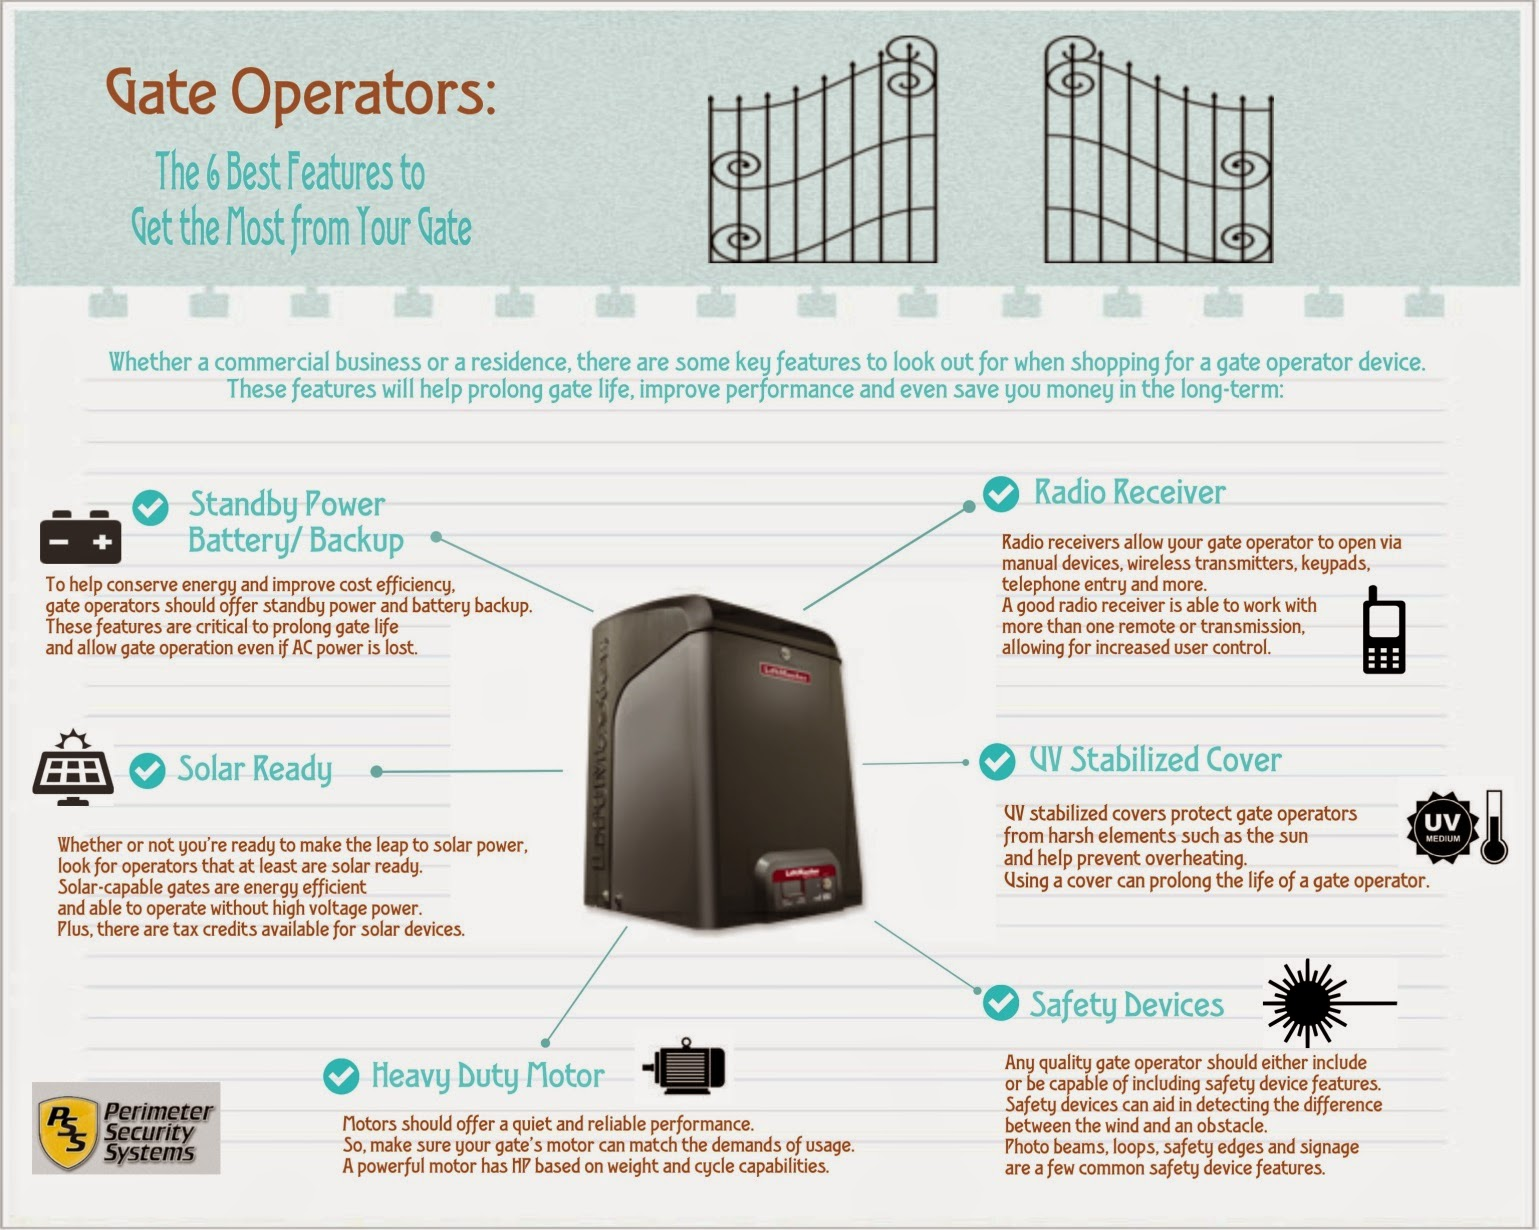 gate operator features